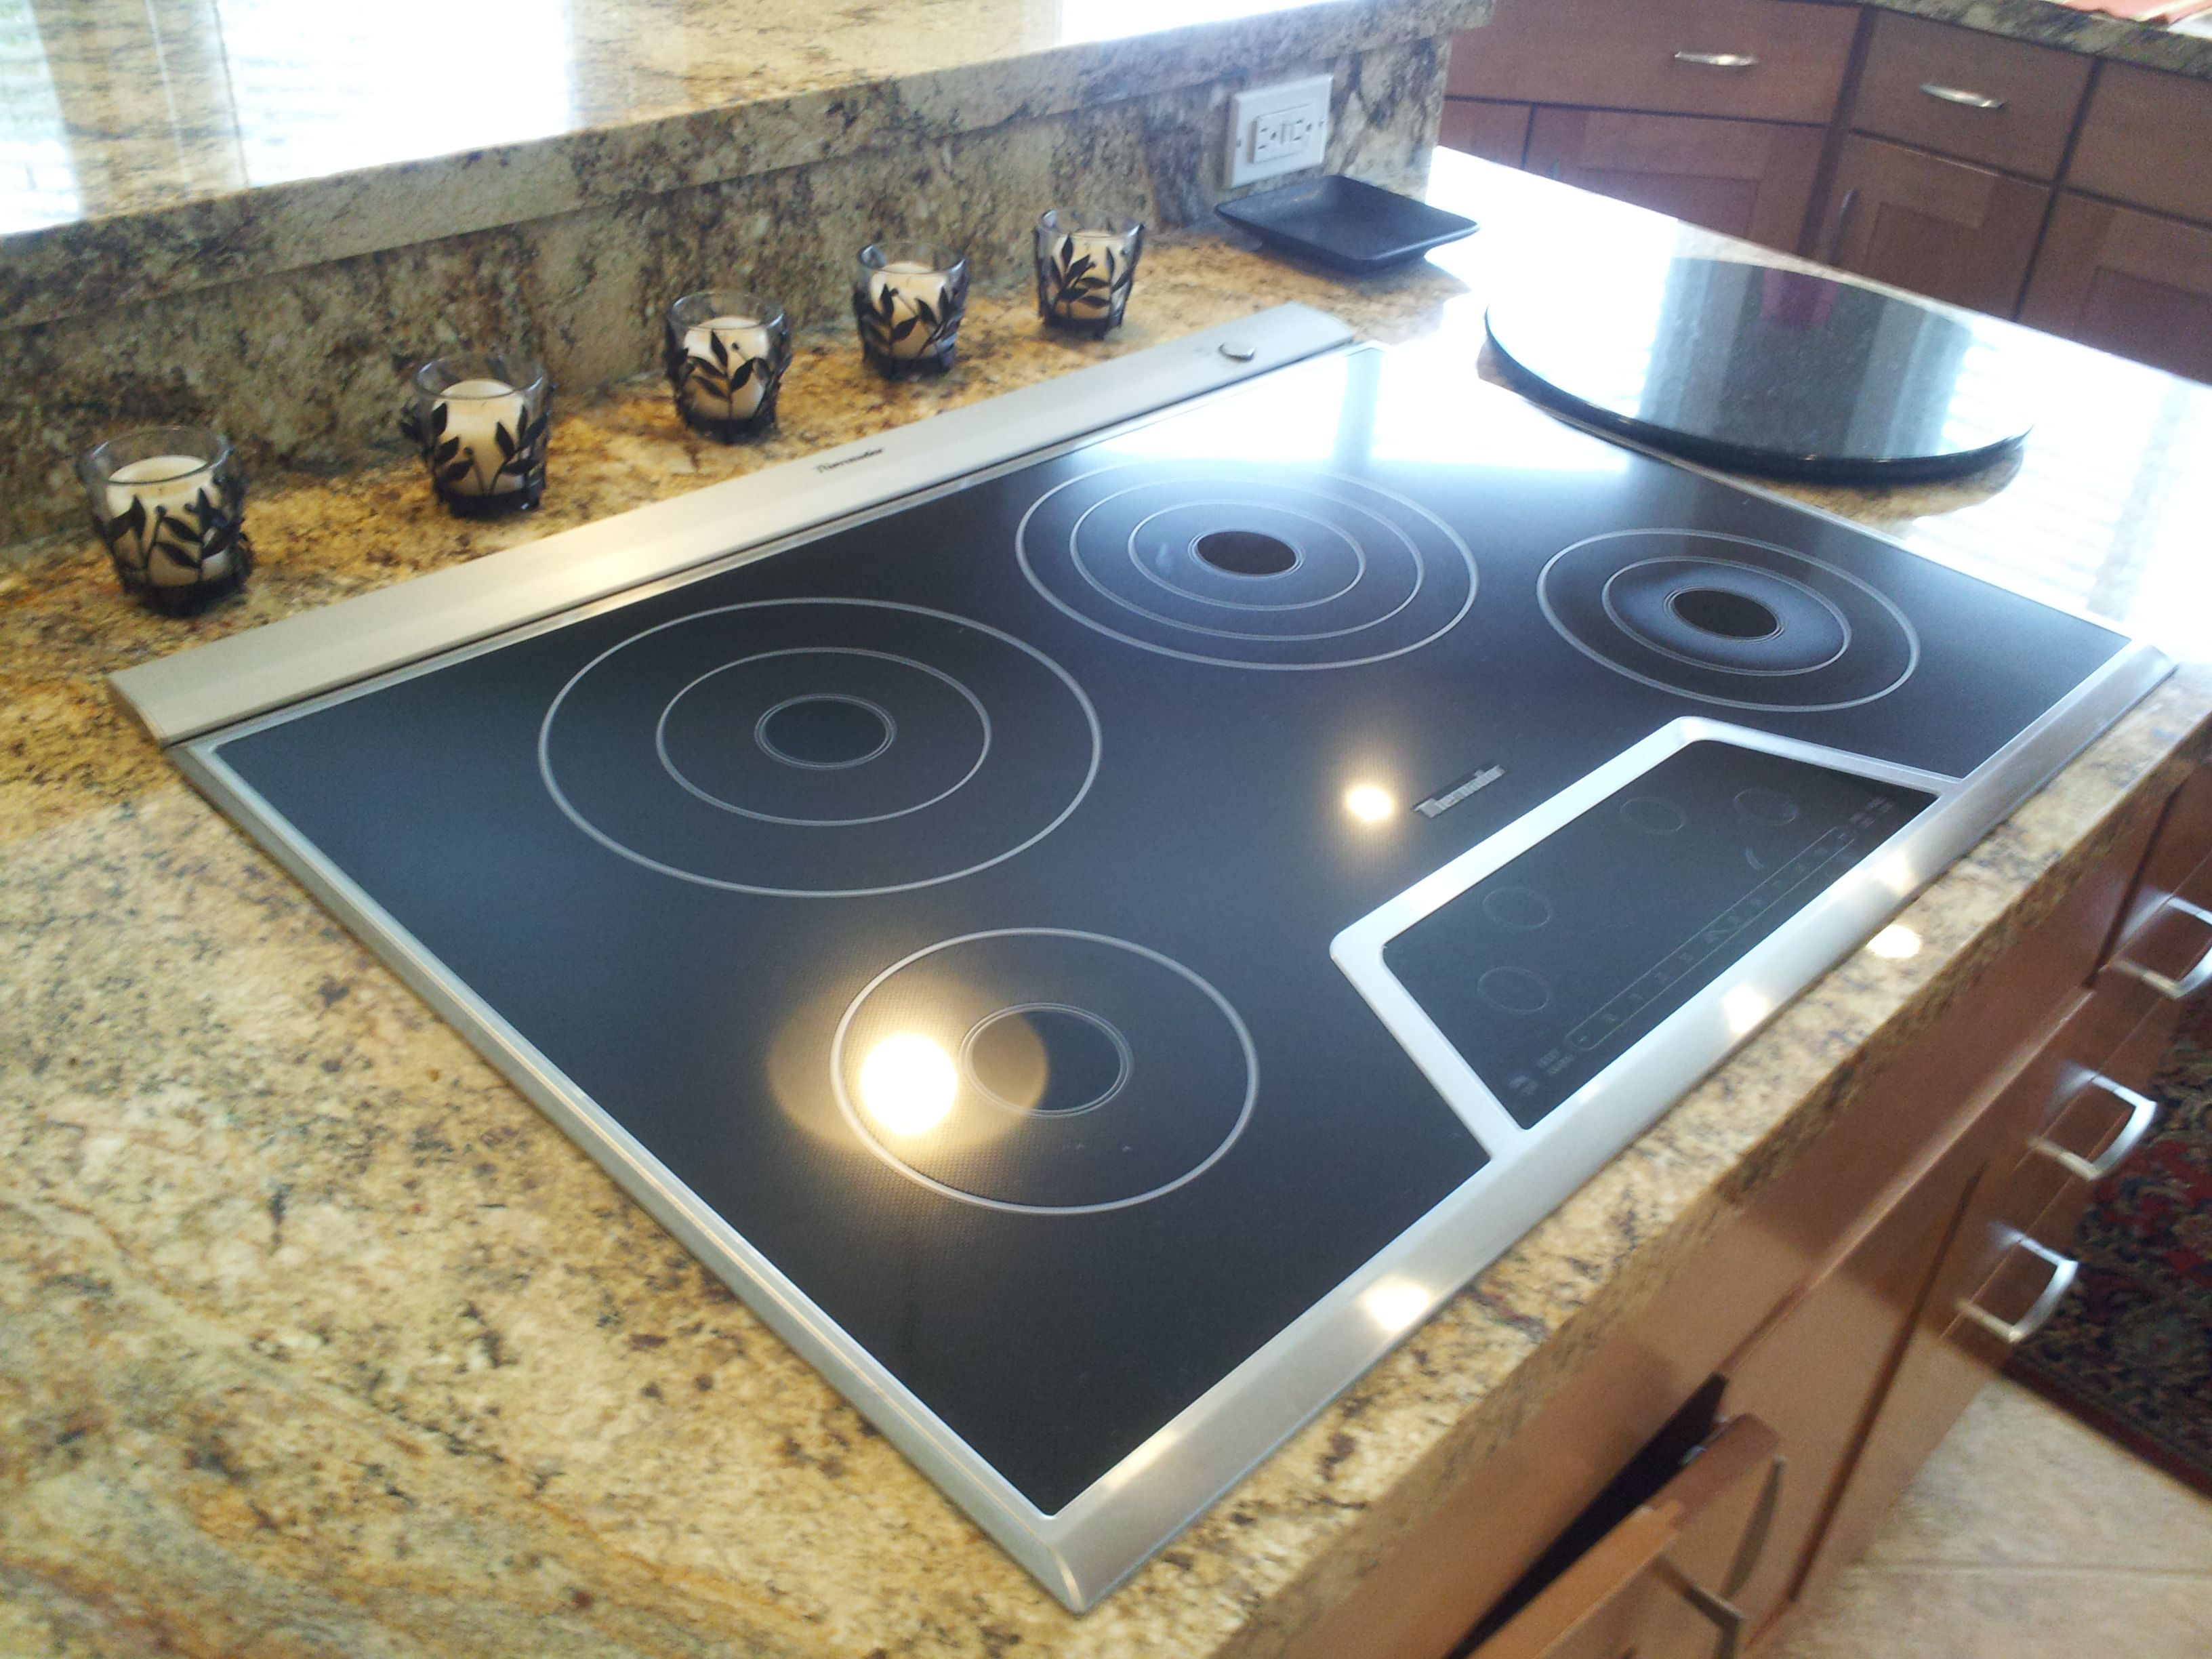 Instead Of A Hood Over The Island This Cooktop Has Pop Up Vent Thermador With Matched Slimline Exhaust